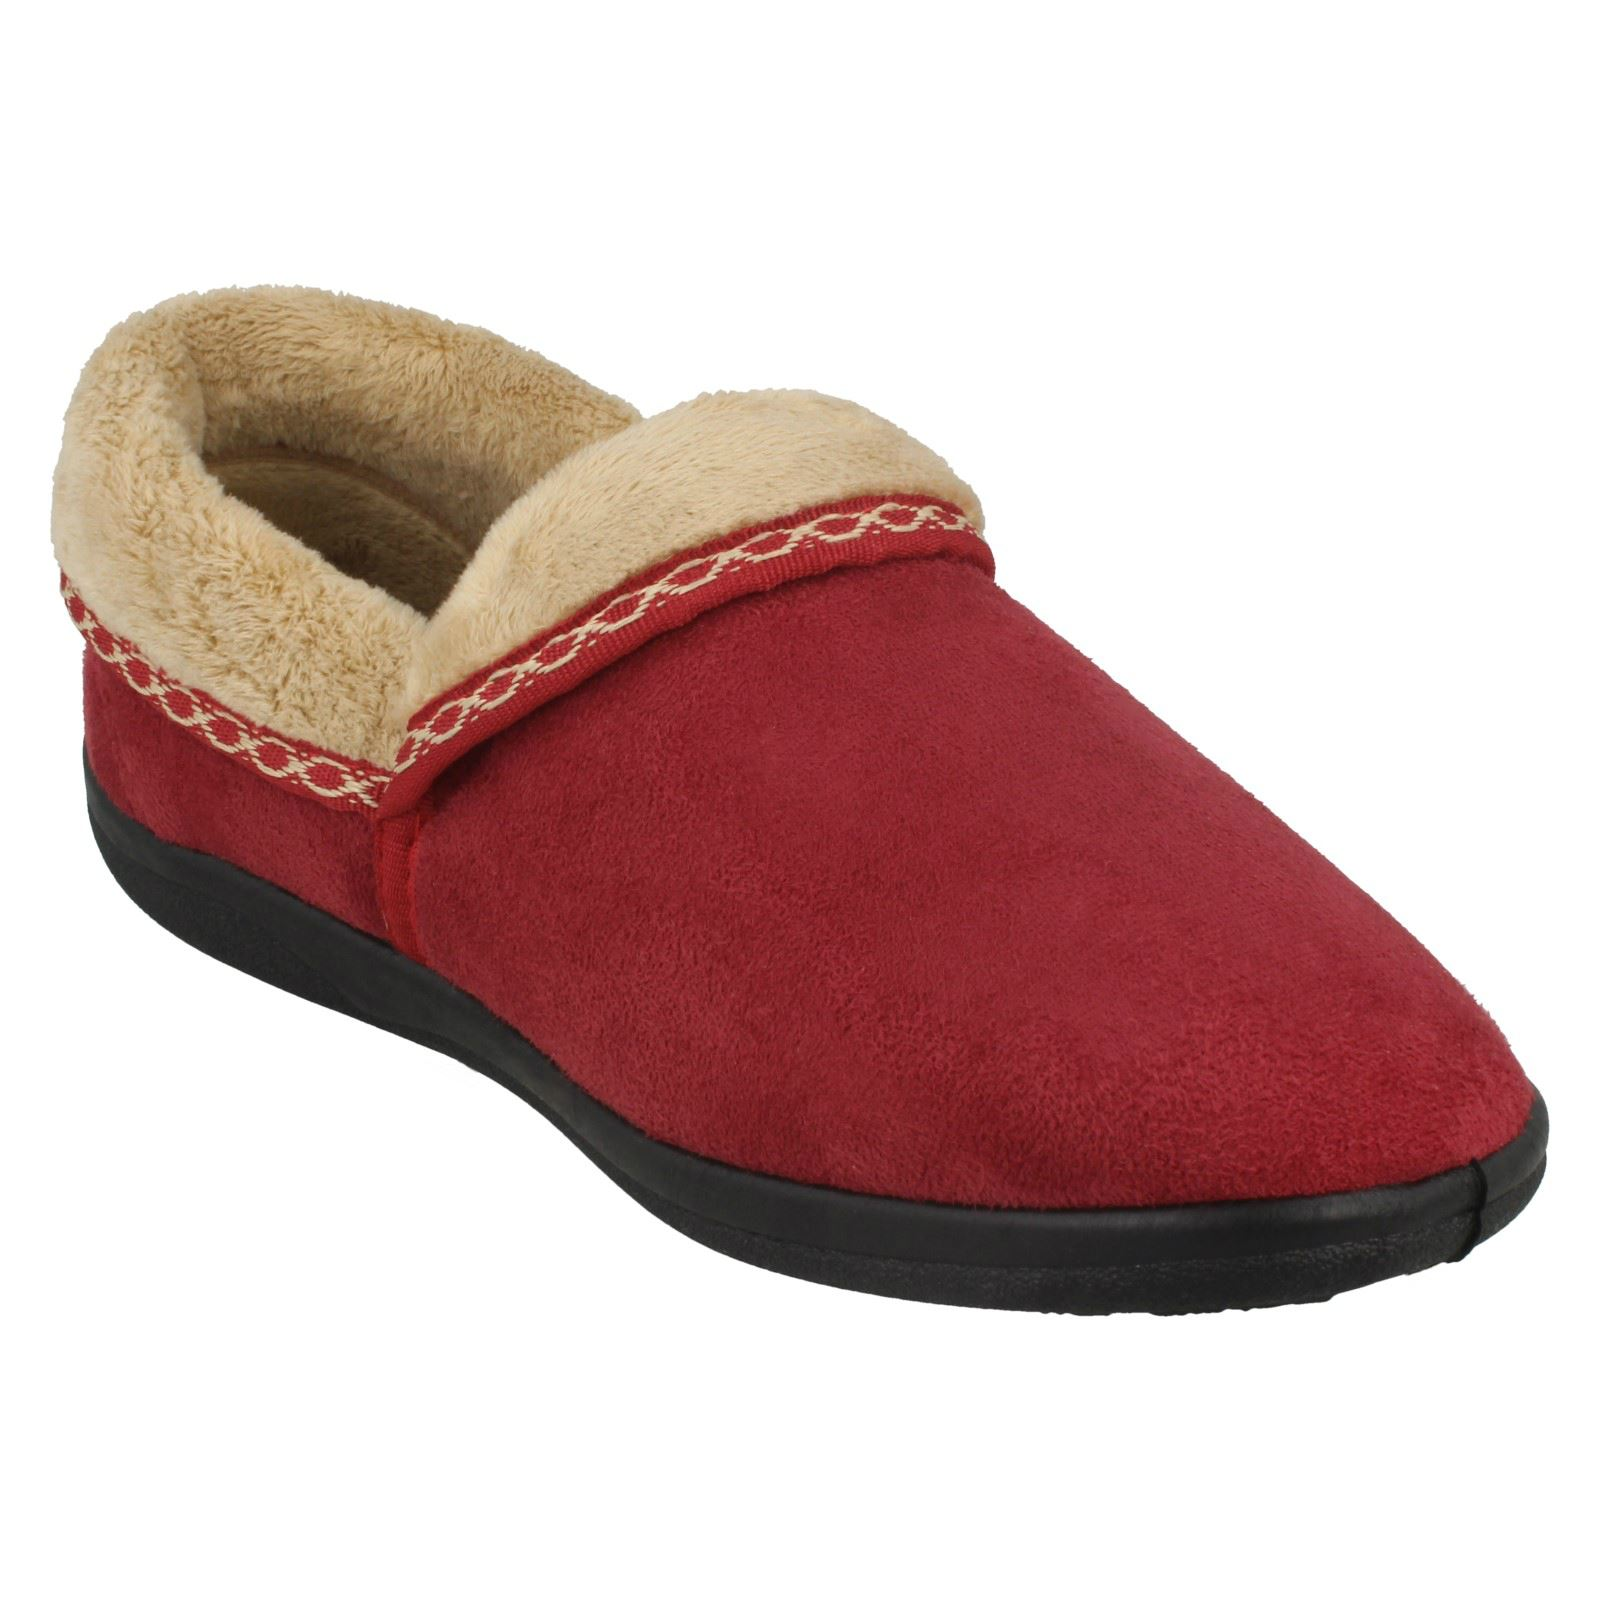 09459c645aaab Ladies-Padders-Slip-On-Wide-Fitting-Slippers-Mellow thumbnail